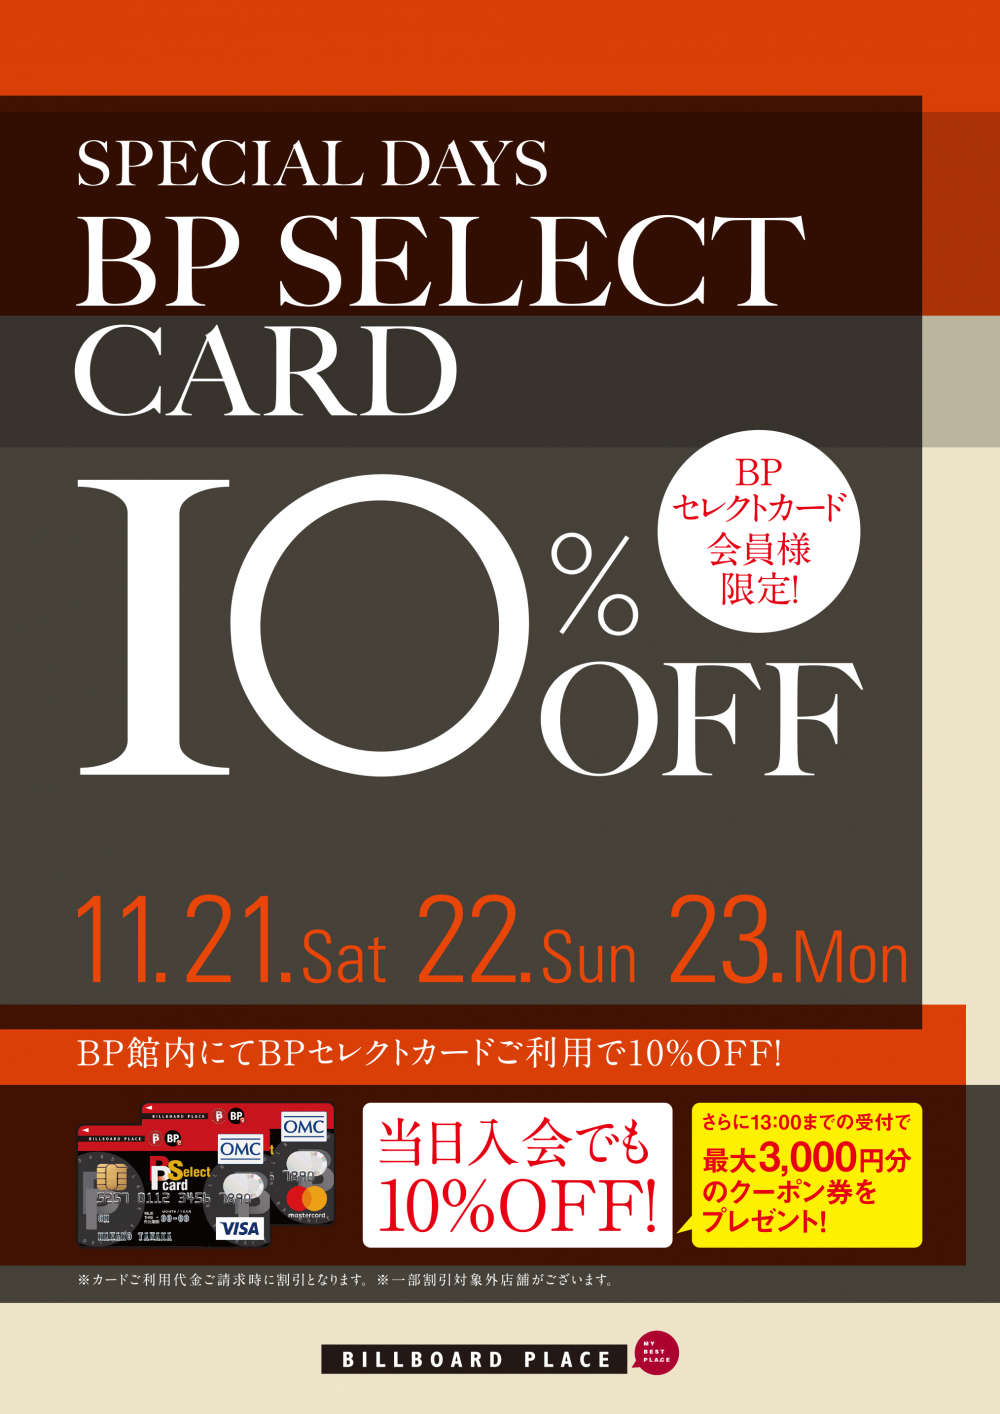 11/21-23 BP SELECT CARD 会員様10%OFF SALE !